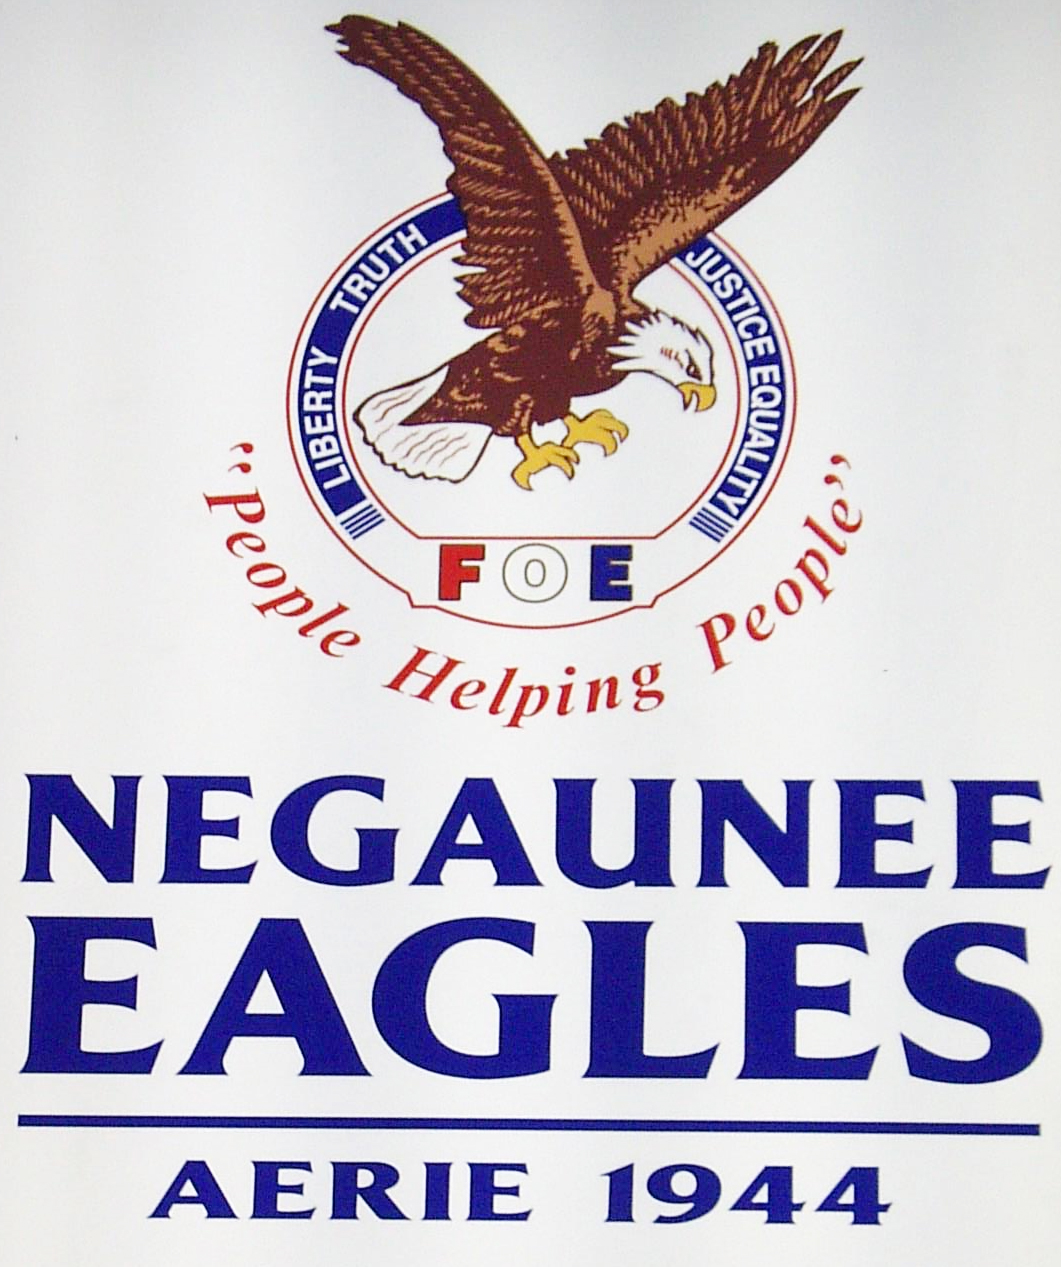 The Negaunee Eagles #1944